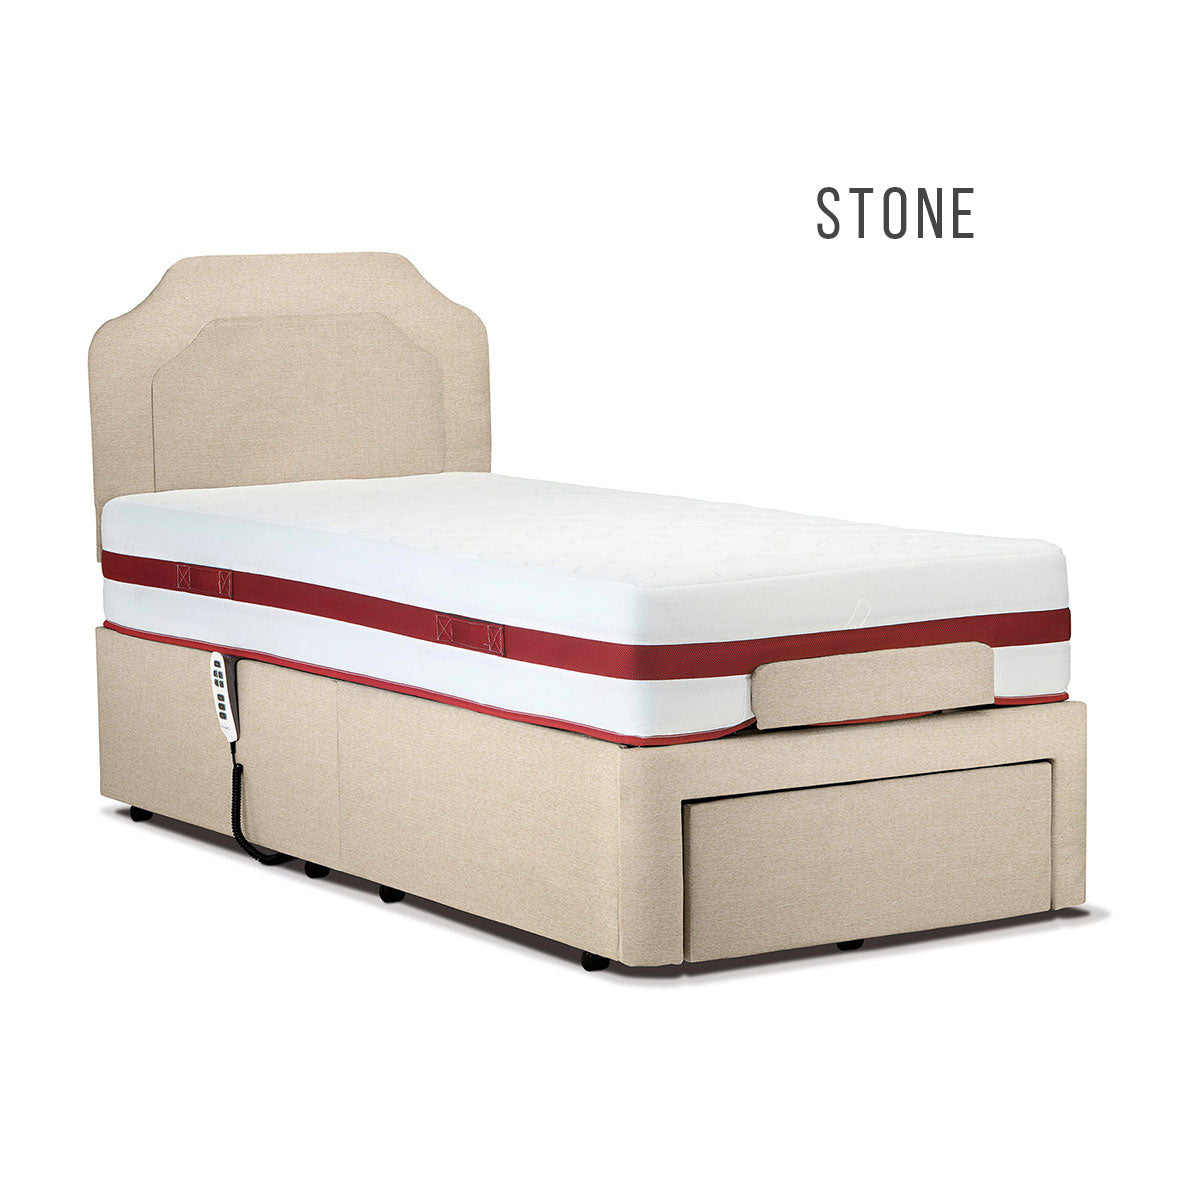 Sherborne 4' Dorchester Head and Foot Adjustable Bed